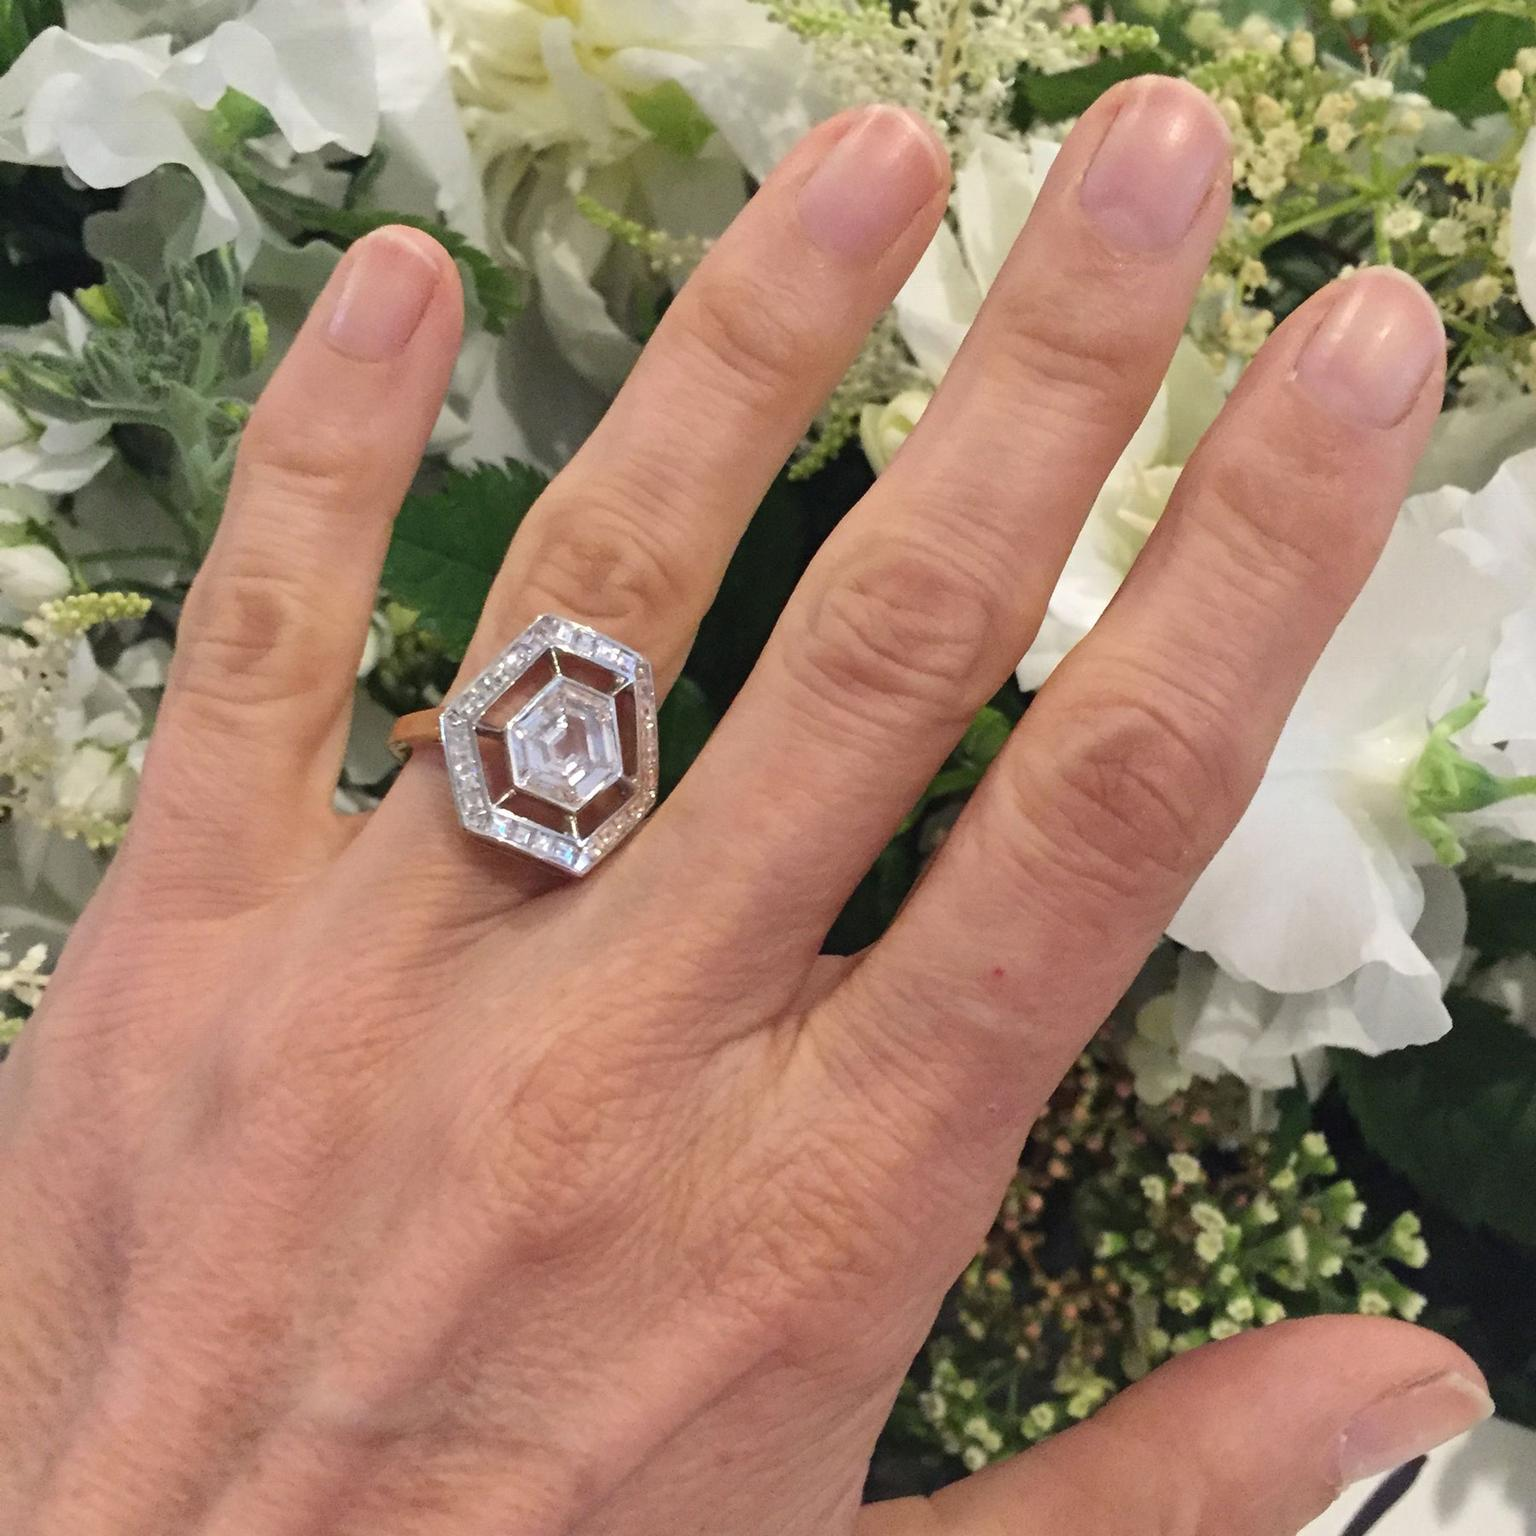 Jessica McCormack Space Odyssey diamond engagement ring